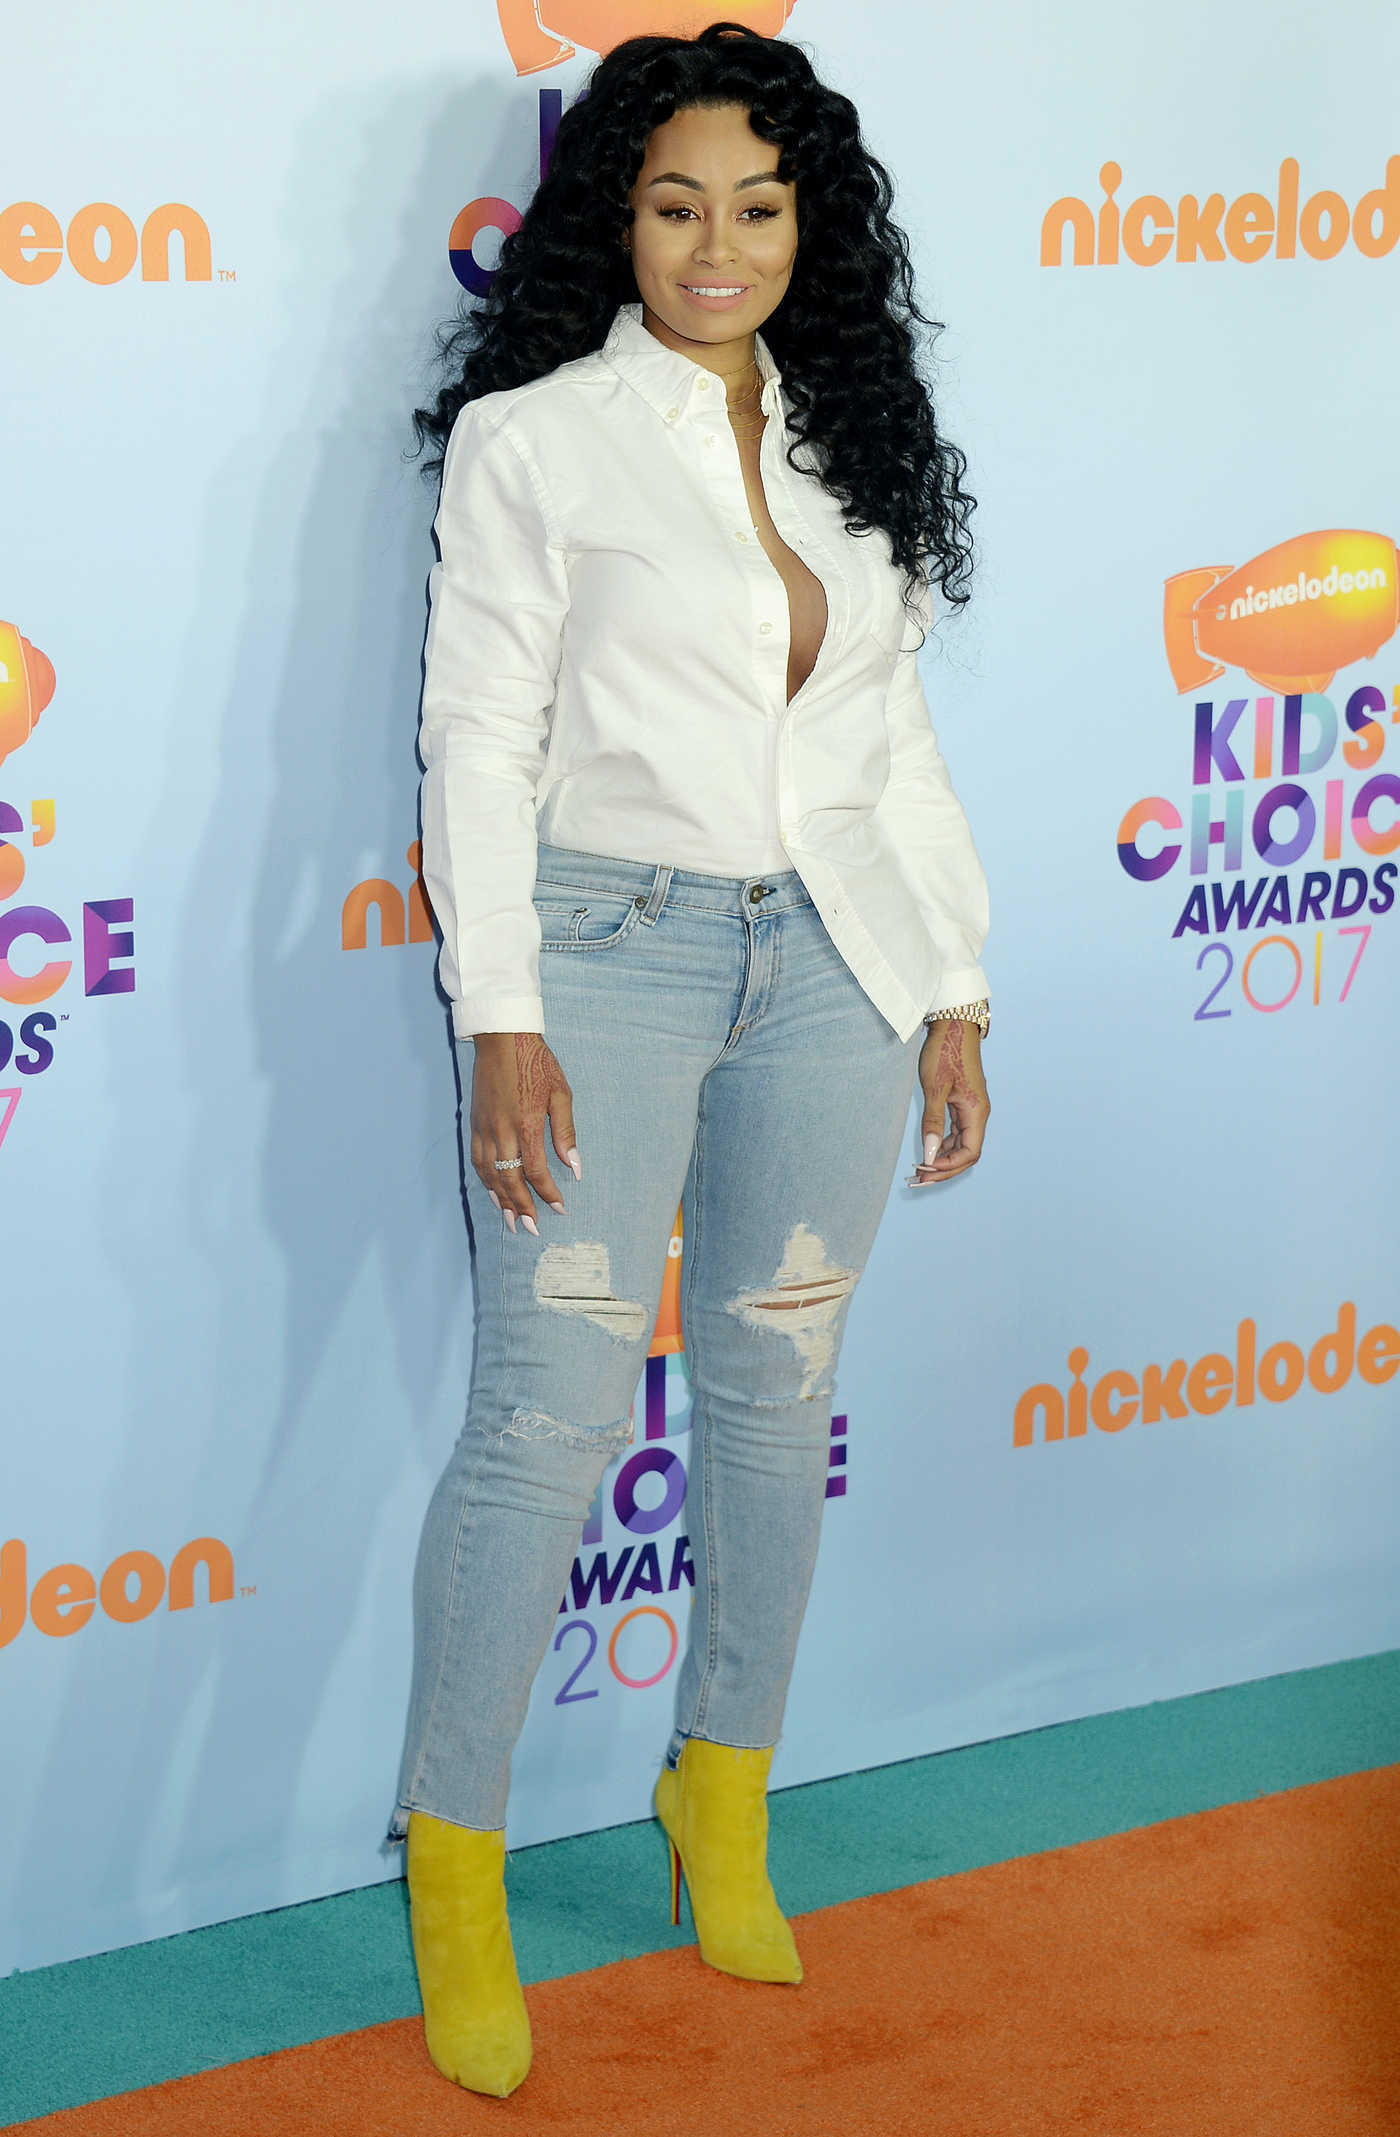 Blac Chyna at the 2017 Nickelodeon Kids' Choice Awards in Los Angeles 03/11/2017